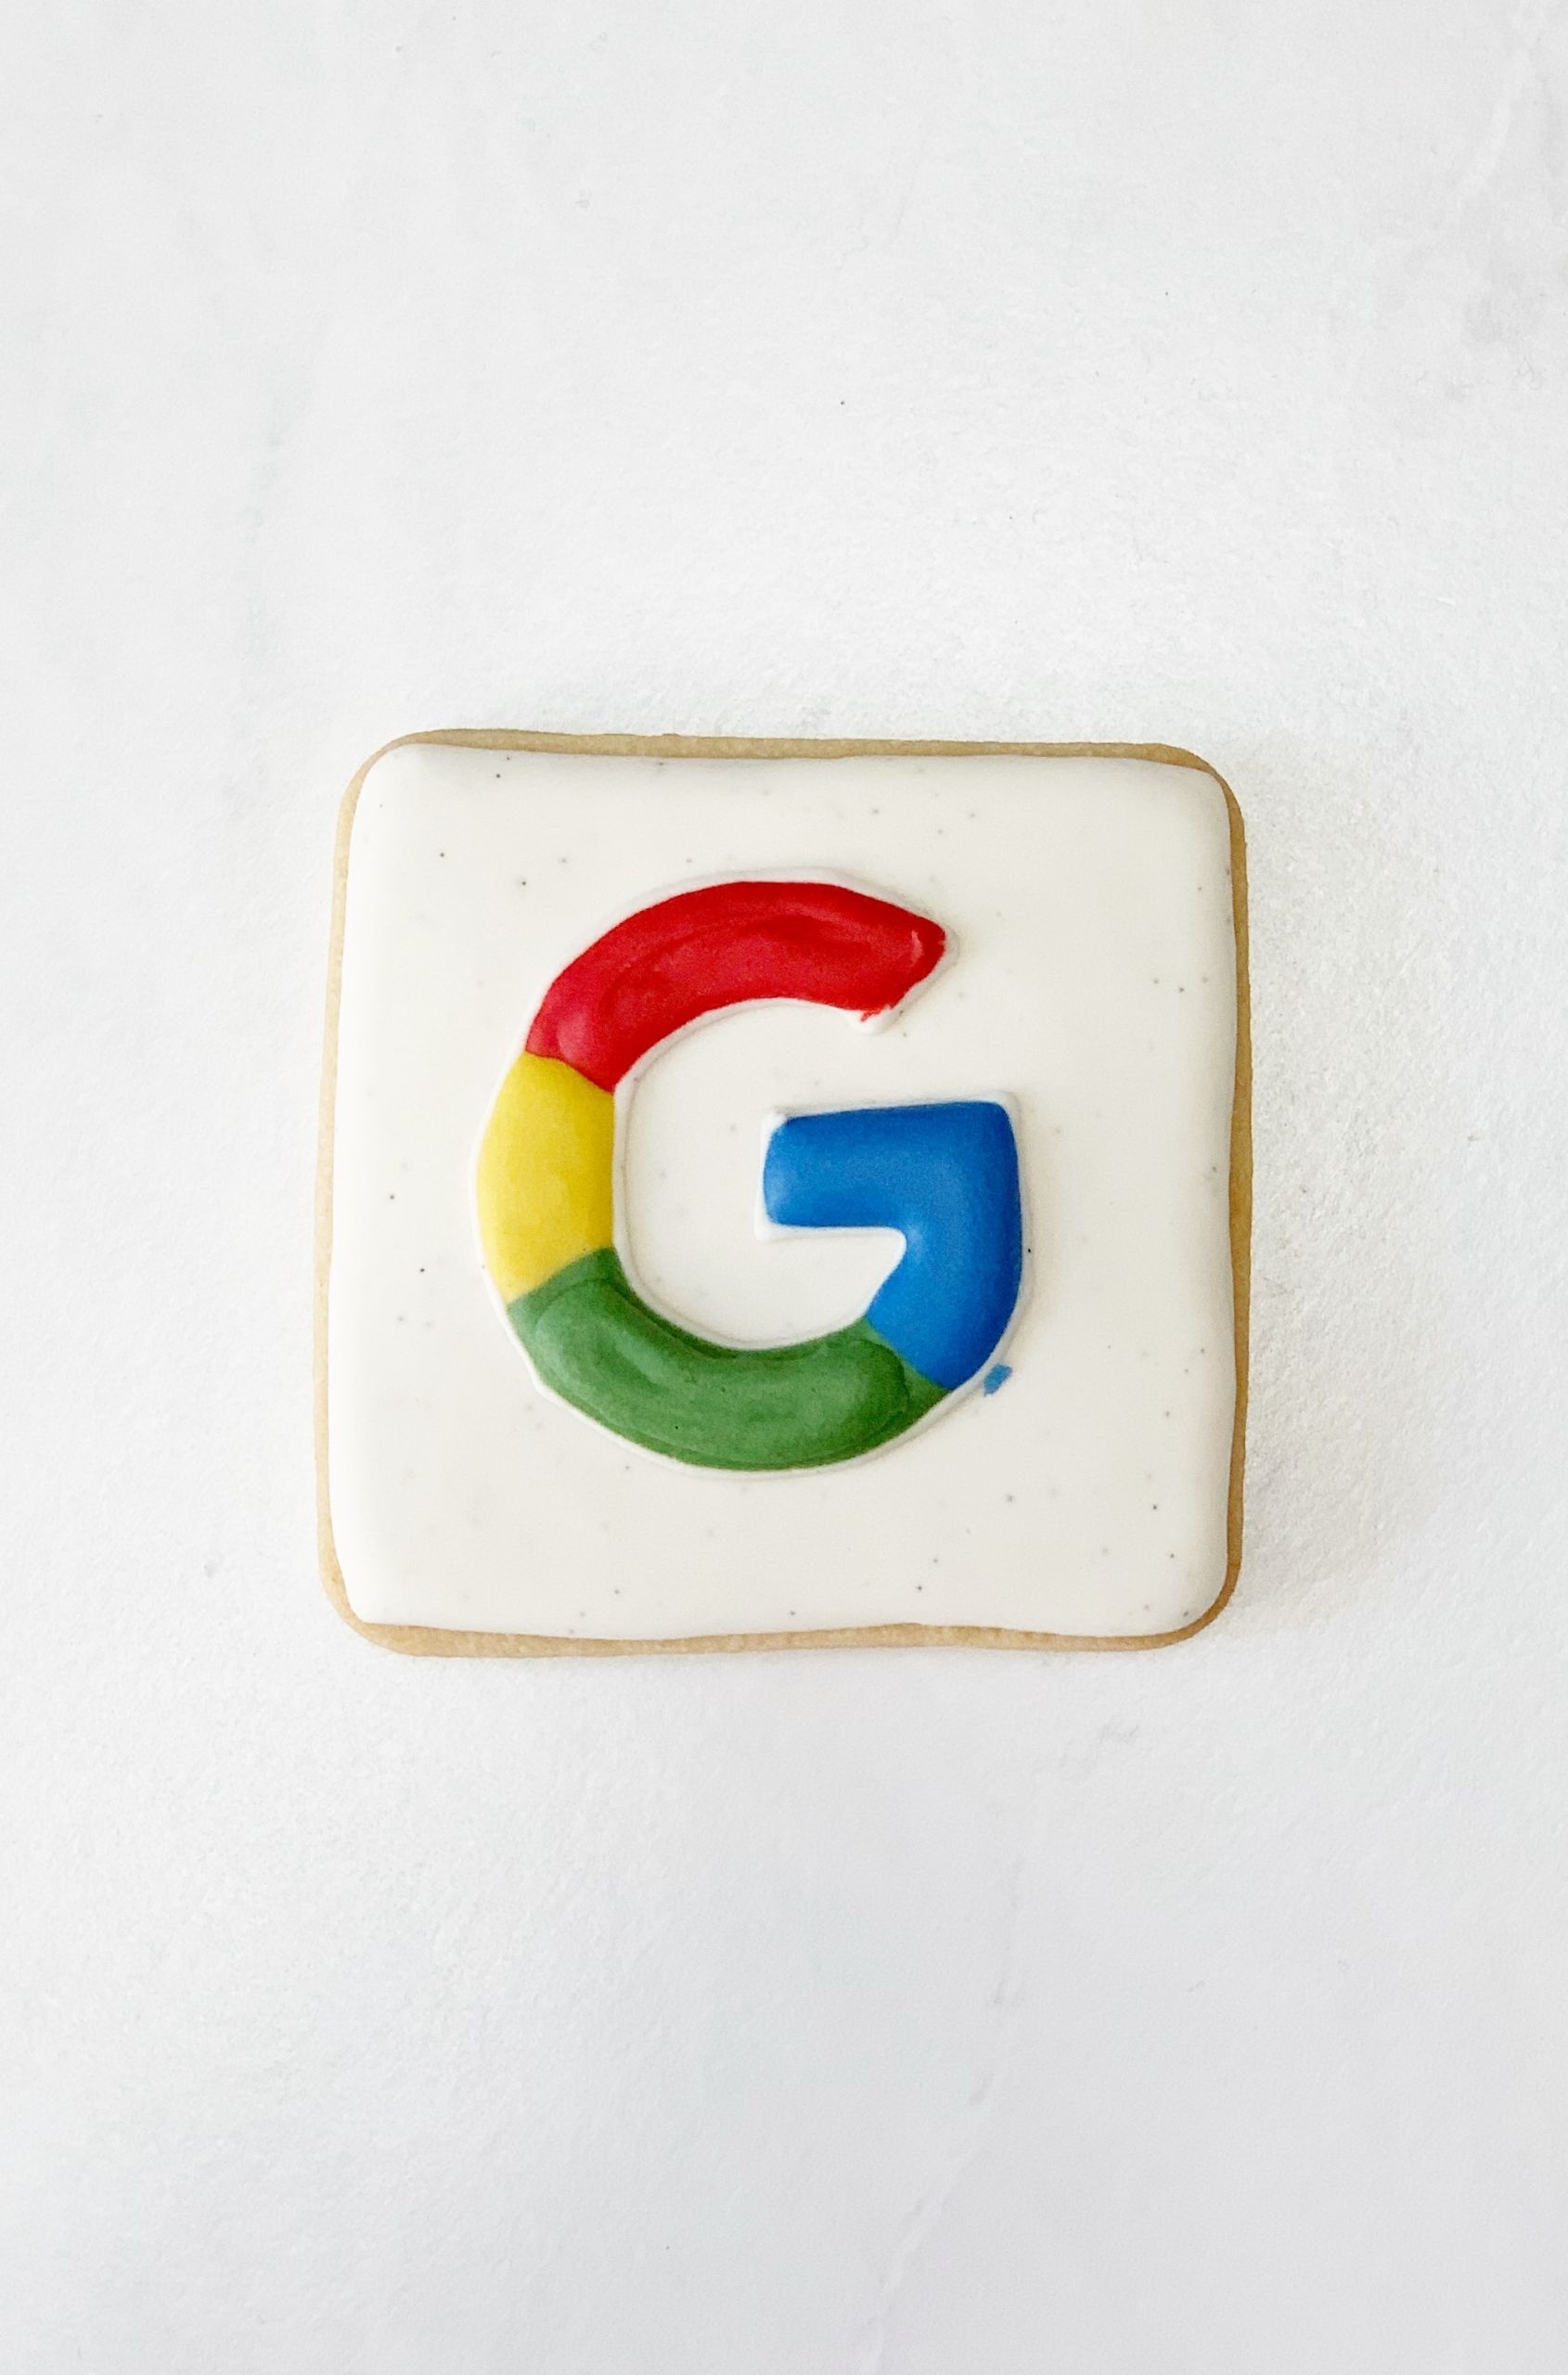 Google Logo on a Cookie - Gold River, CA, USA